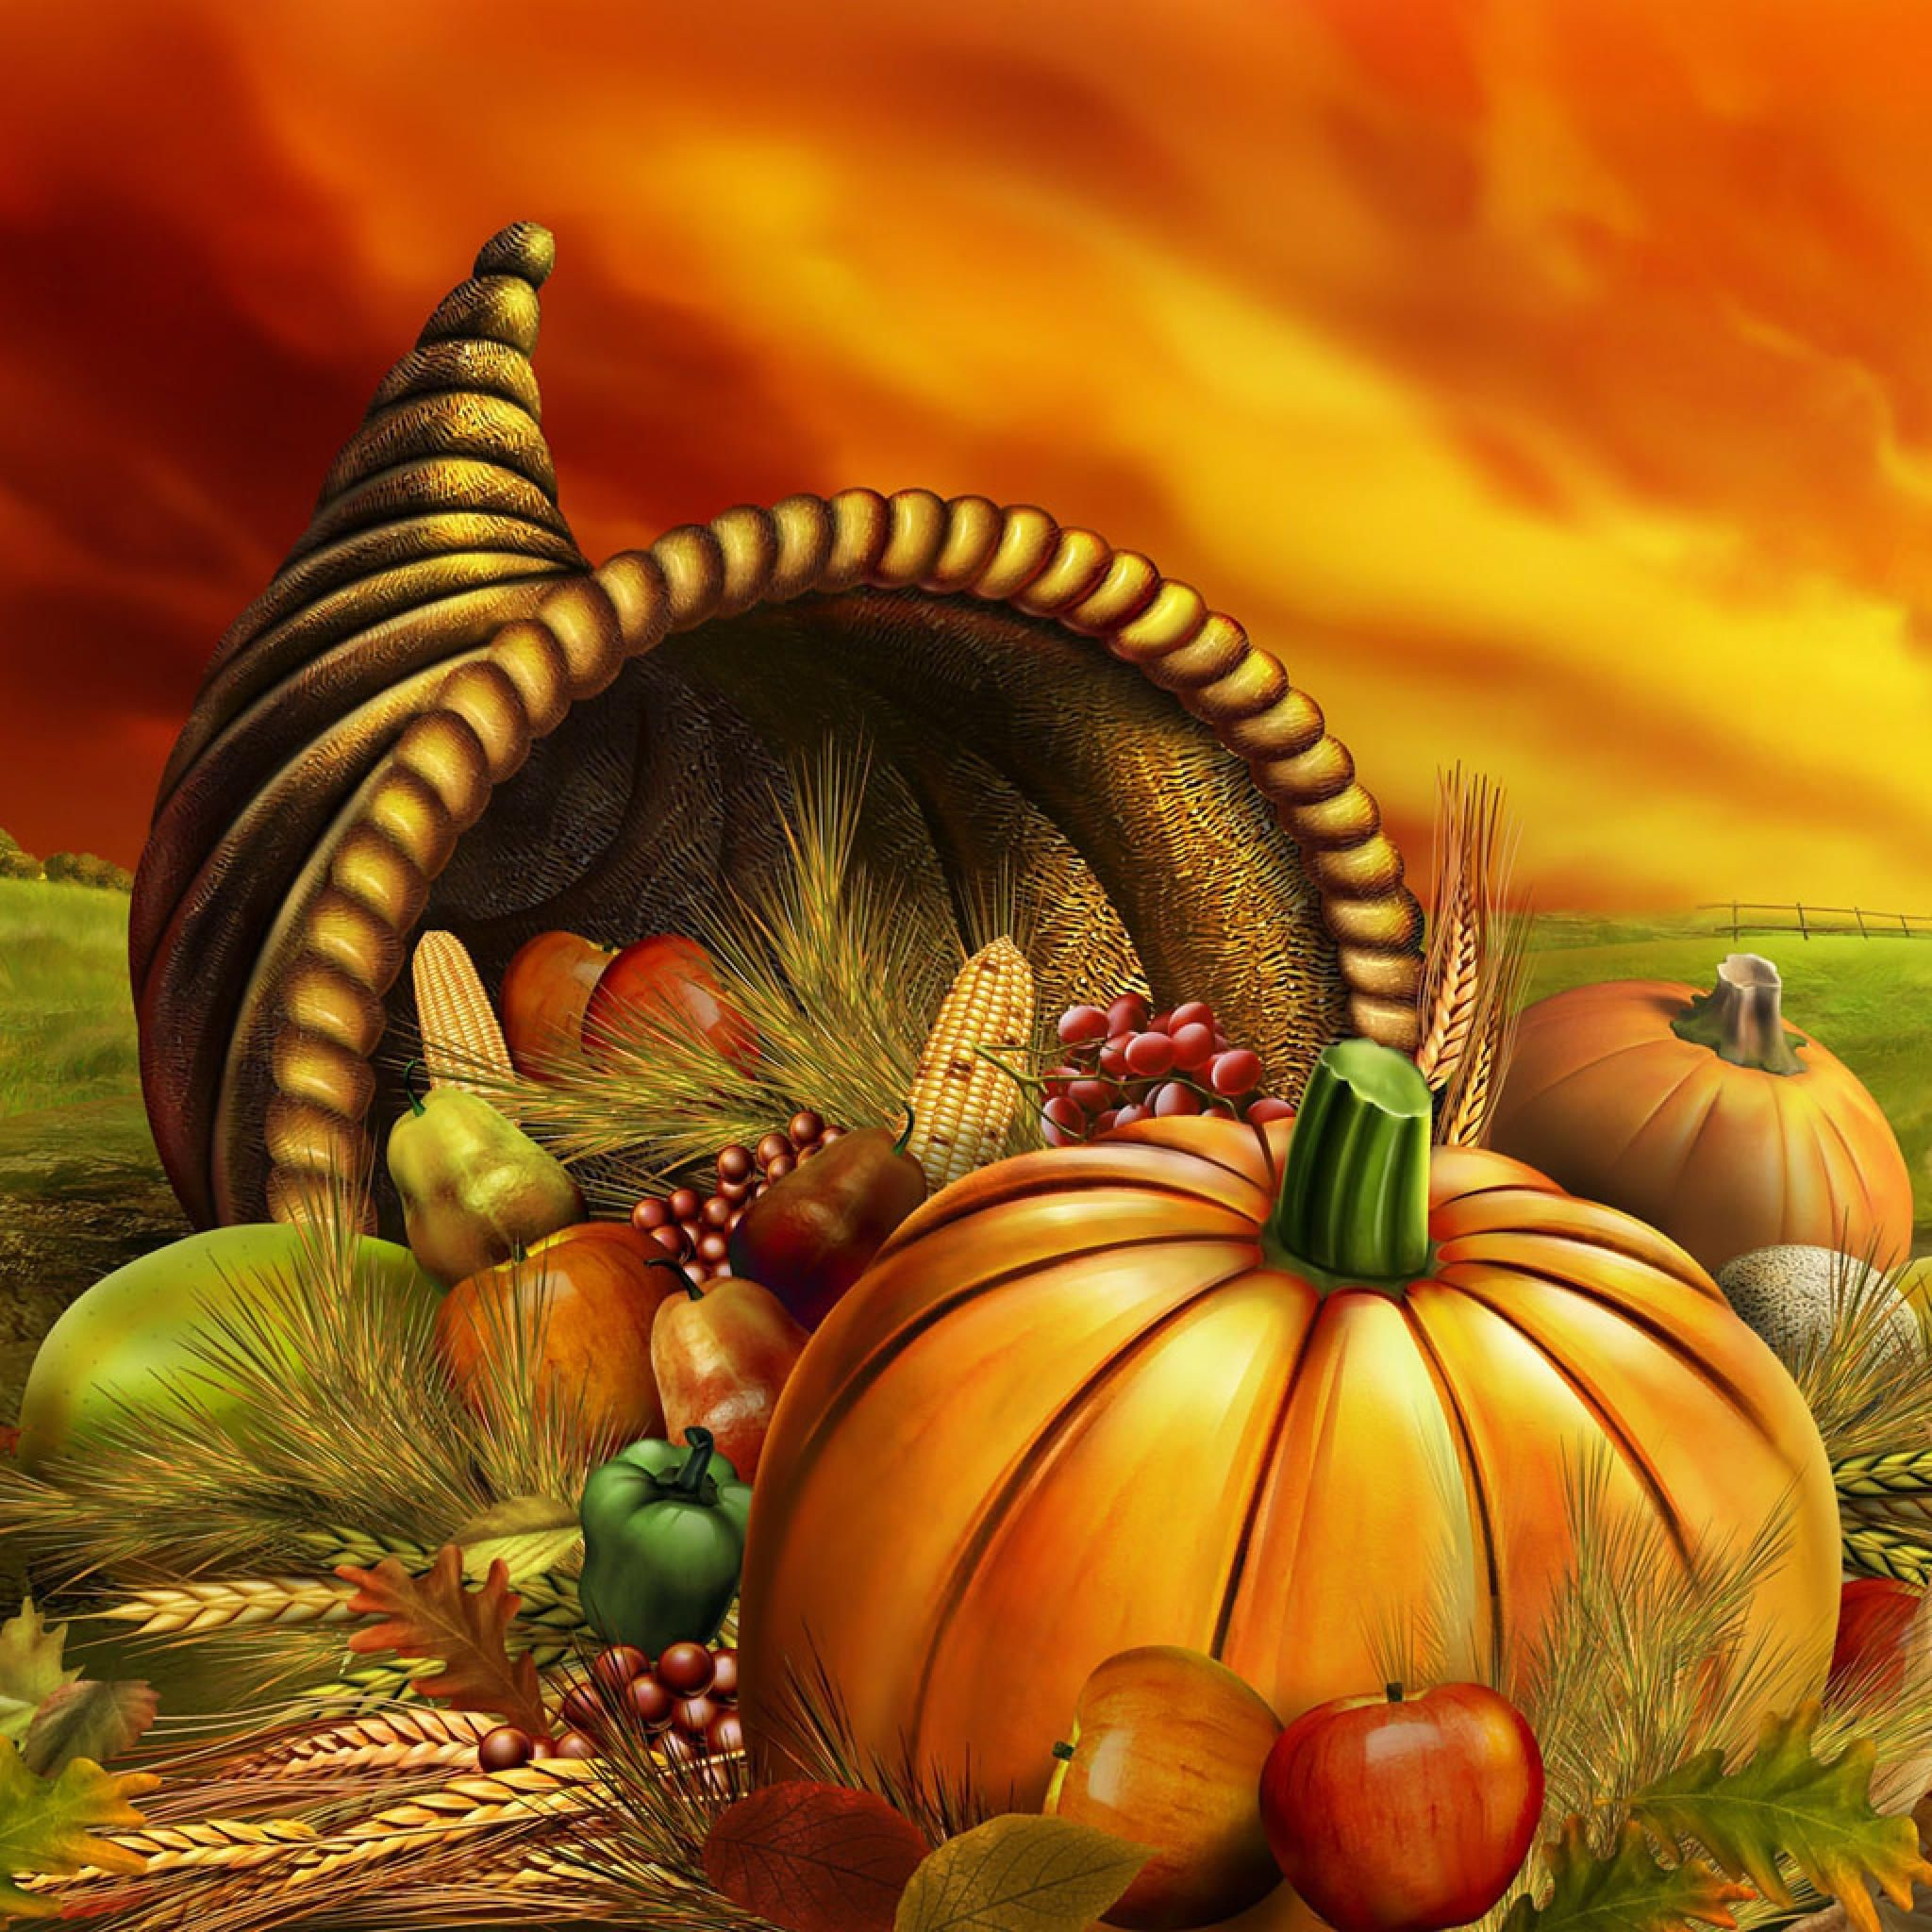 Thanksgiving wallpaper for ipad 2 high definition wallpapers hd thanksgiving wallpaper for ipad 2 kristyandbryce Image collections